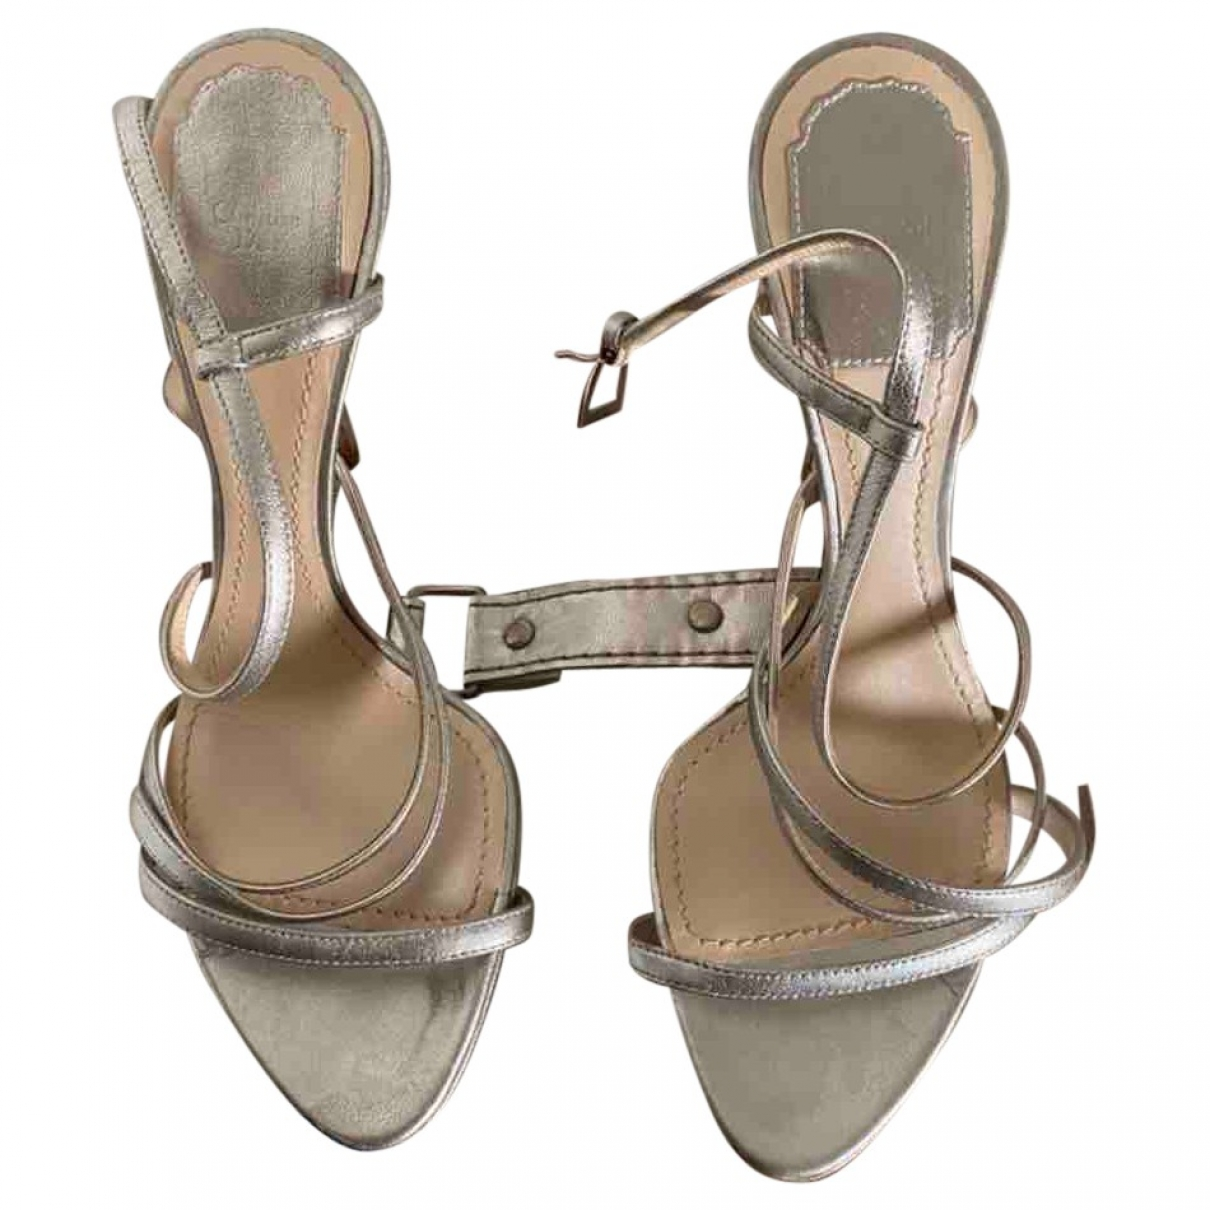 Dior \N Silver Leather Sandals for Women 36.5 EU